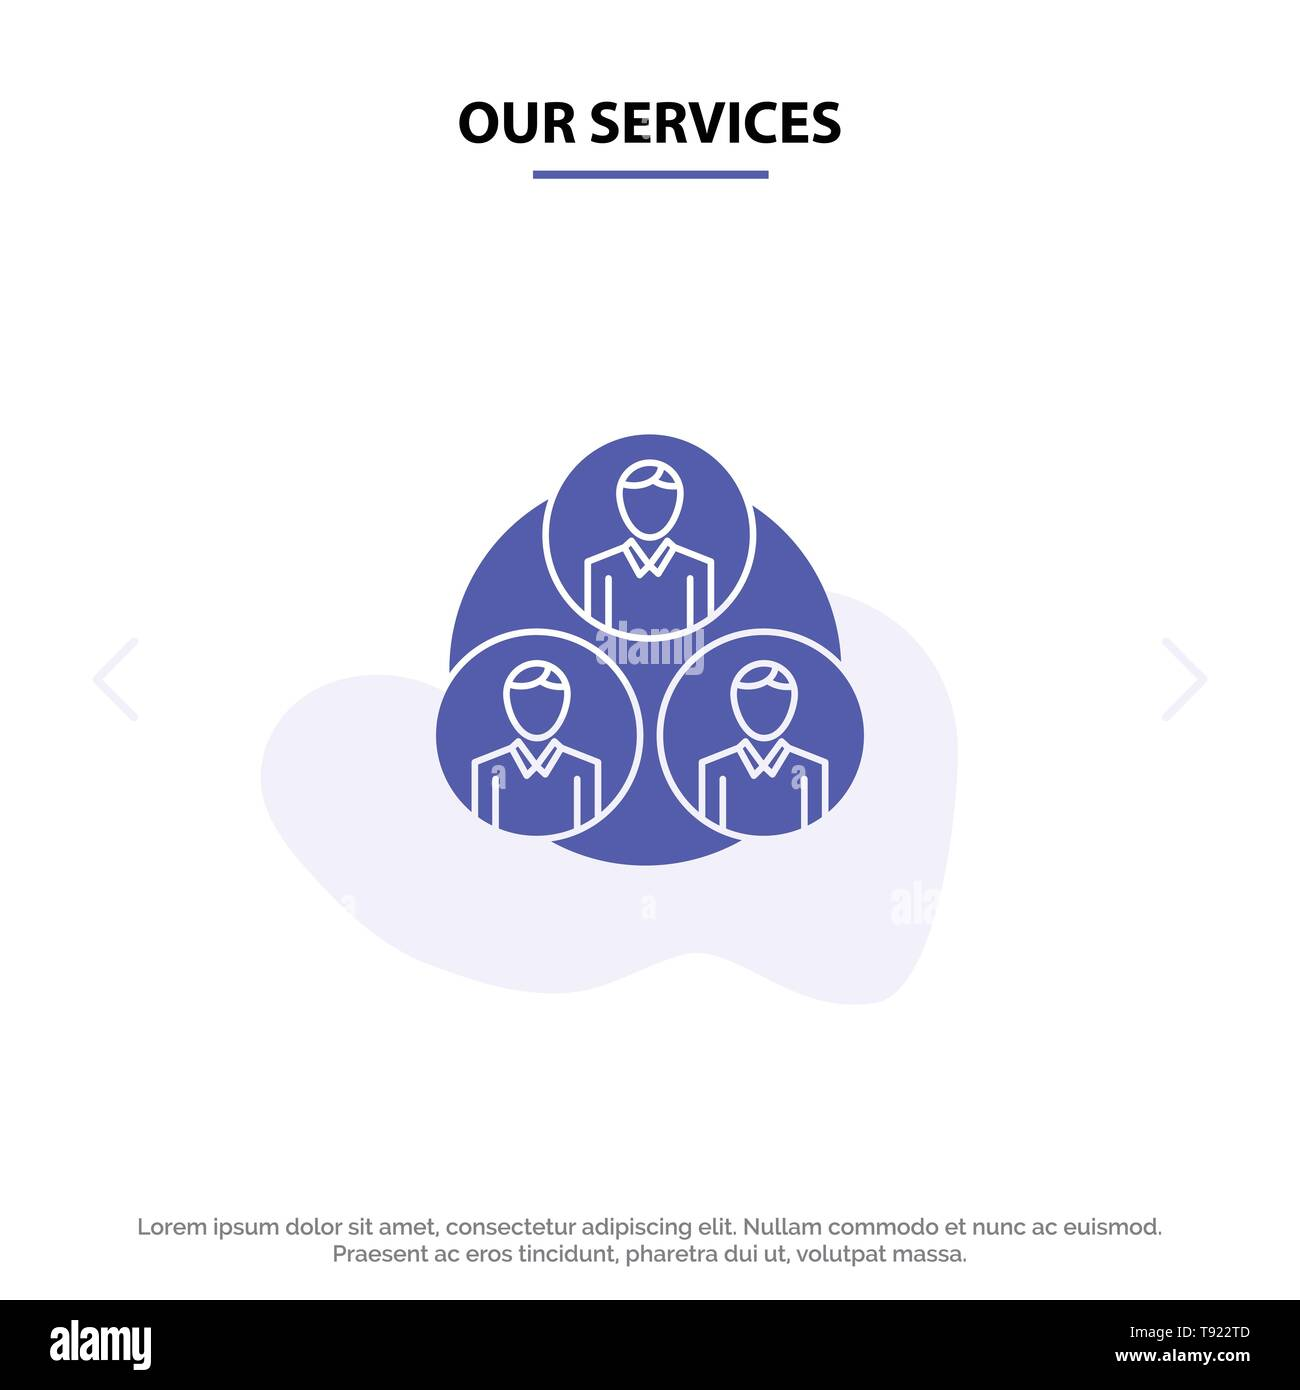 Our Services Staff, Gang, Clone, Circle Solid Glyph Icon Web